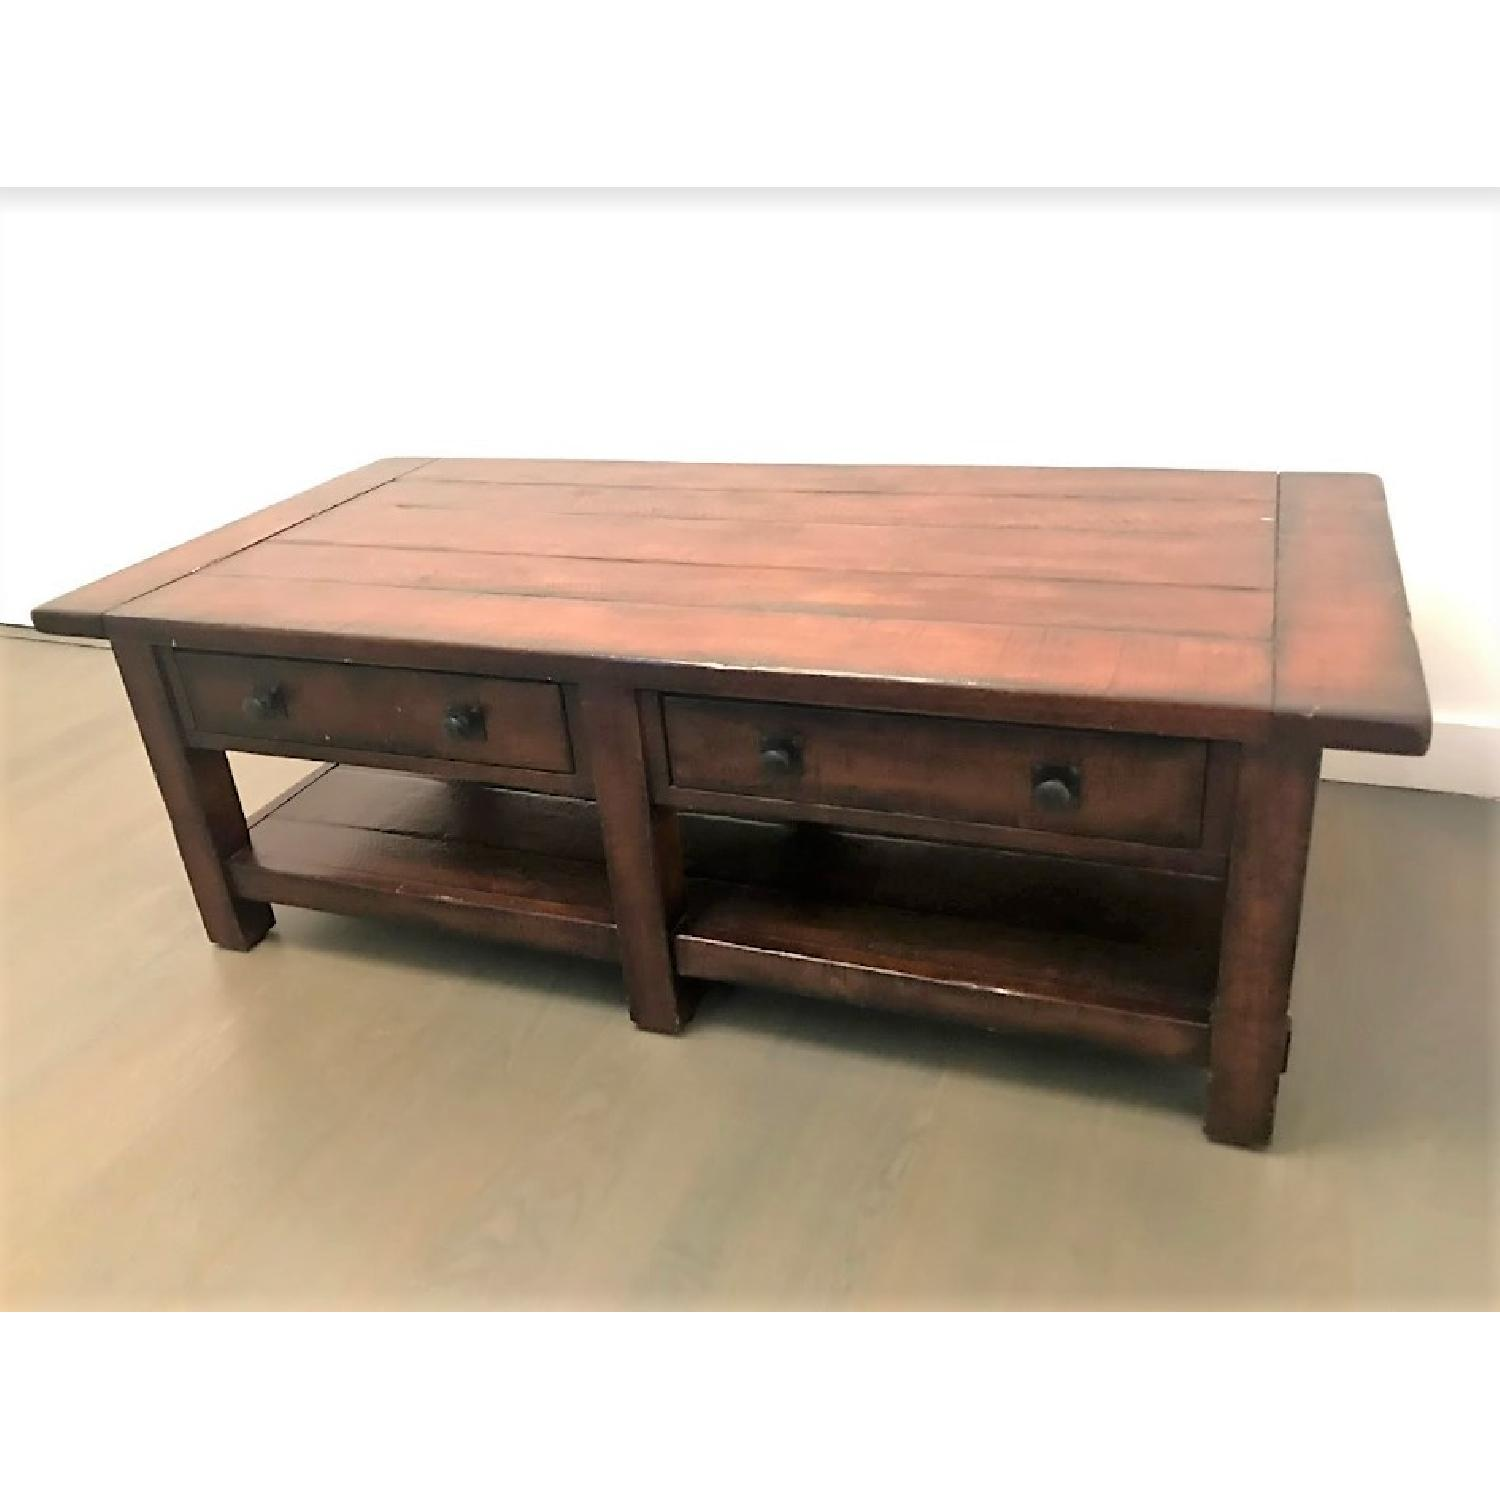 Pottery Barn Benchwright Coffee Table in Rustic AptDeco